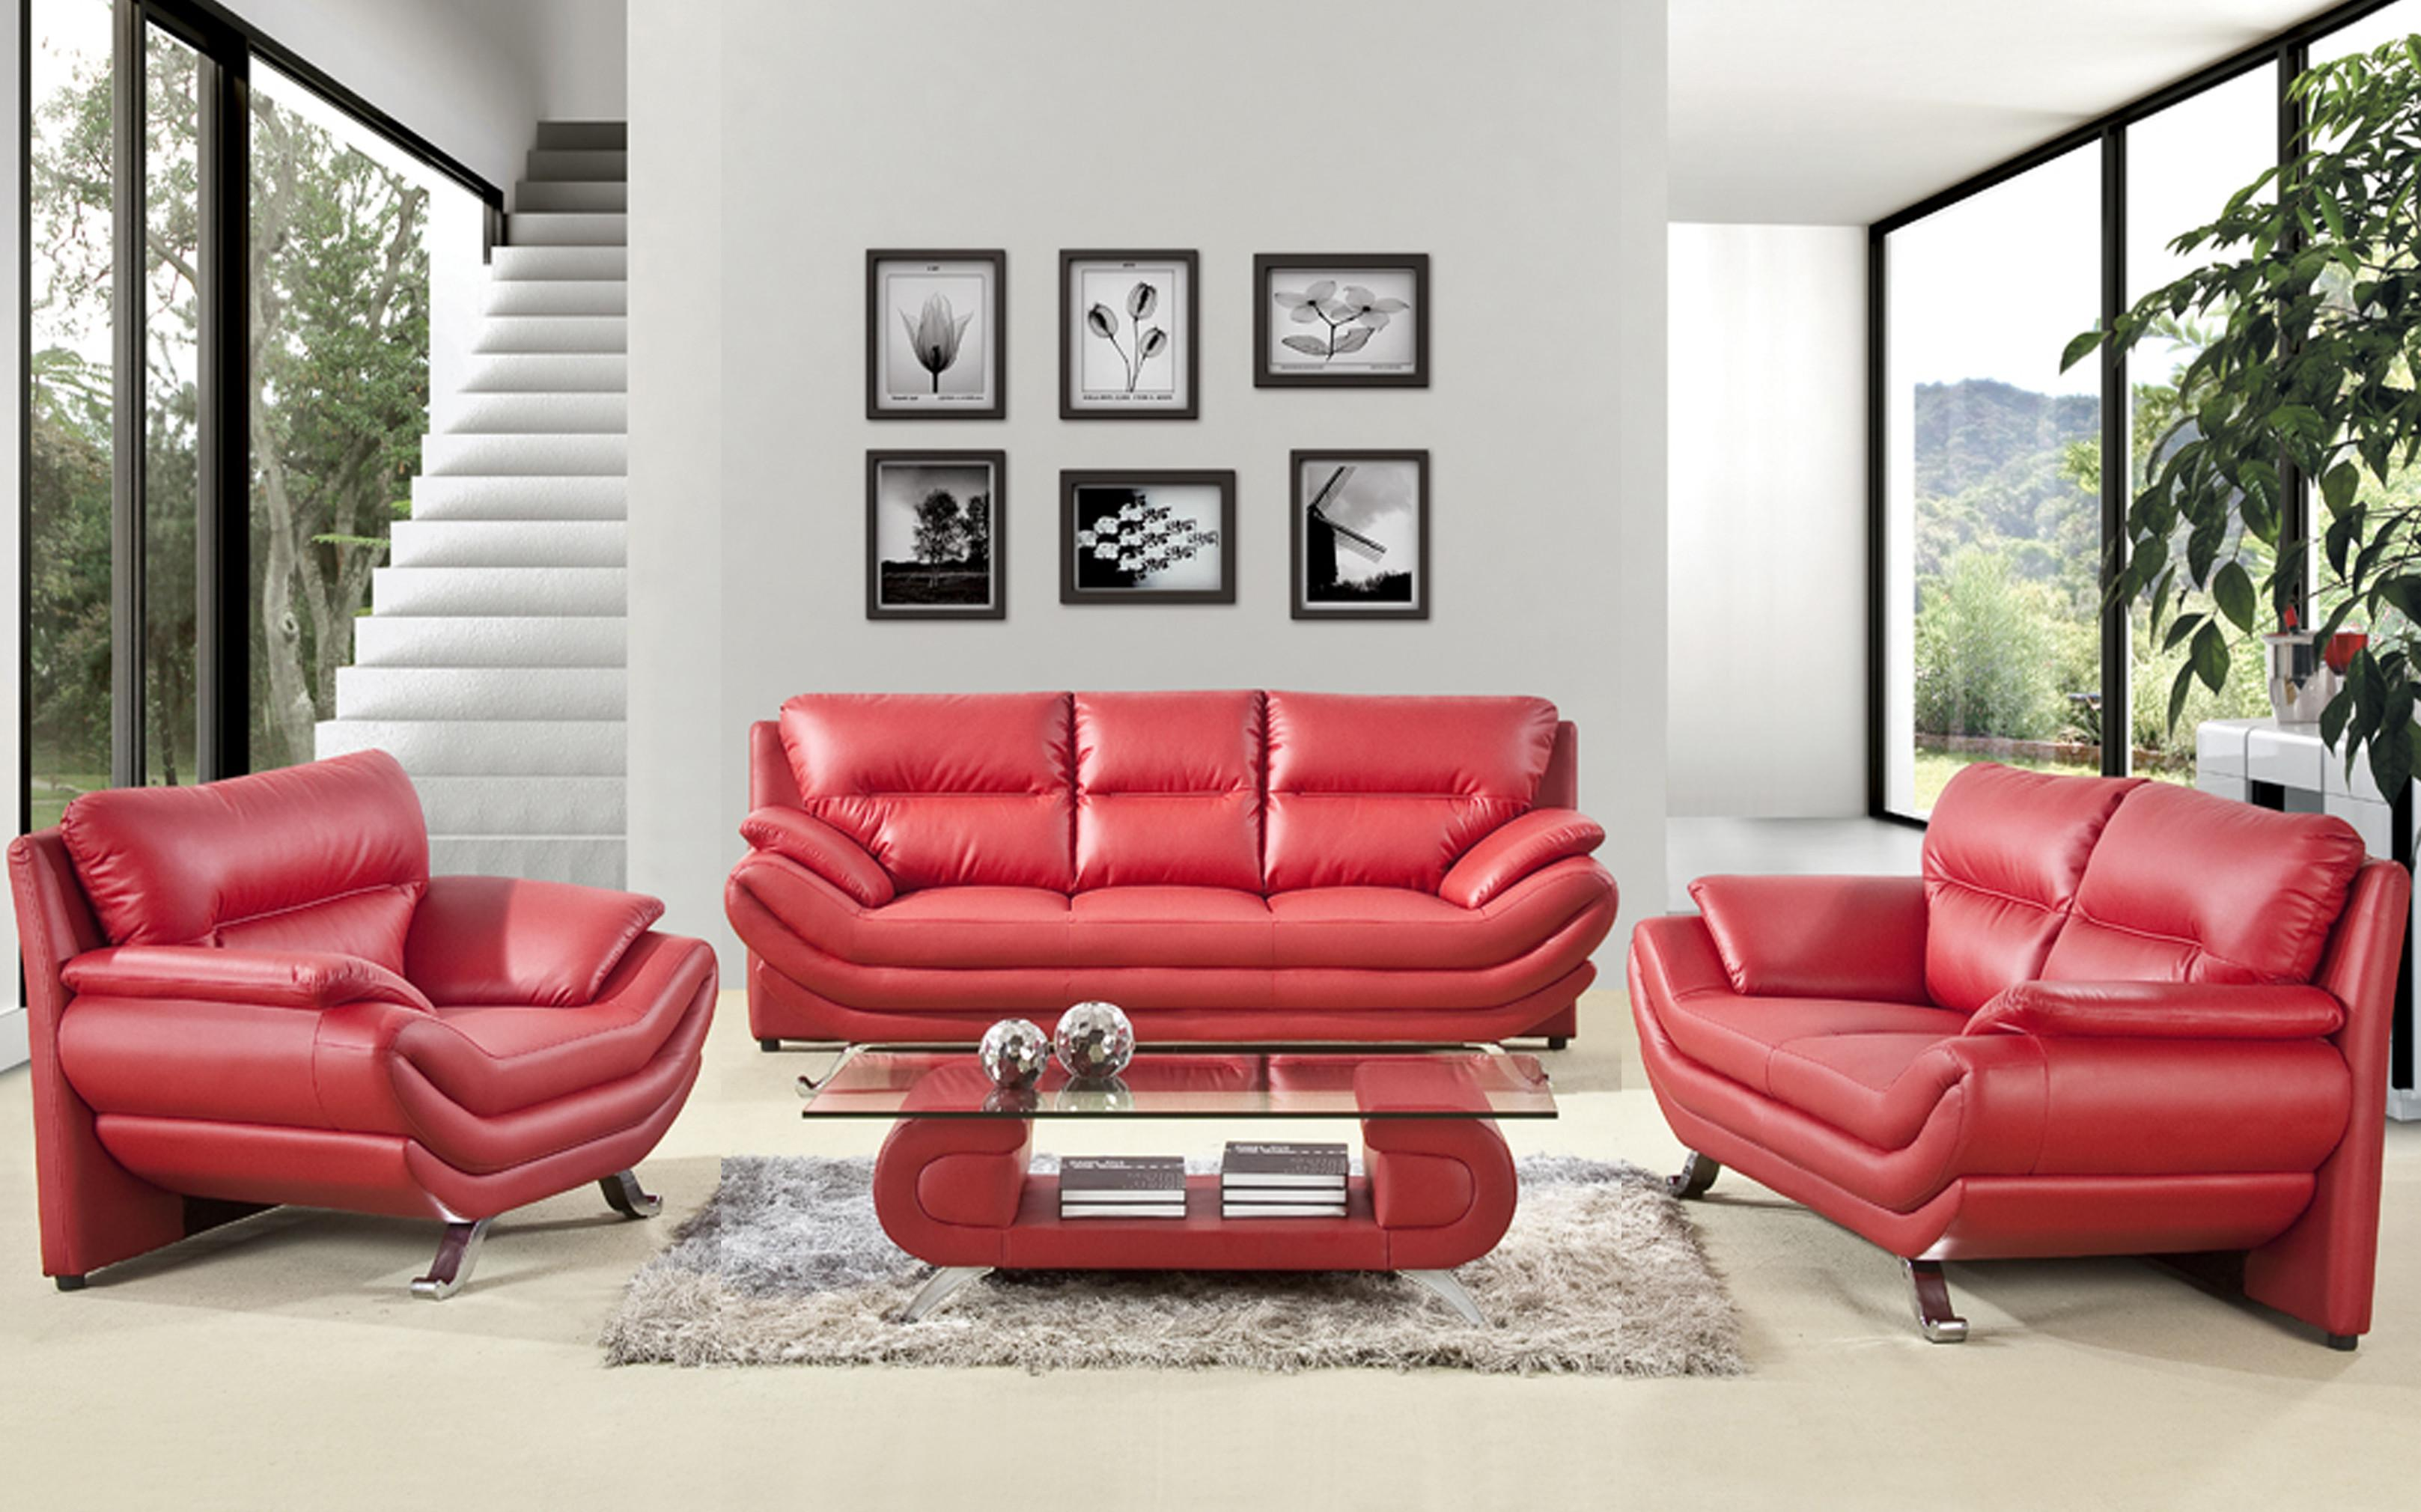 Red Living Room Furniture Accessories Utdgbs